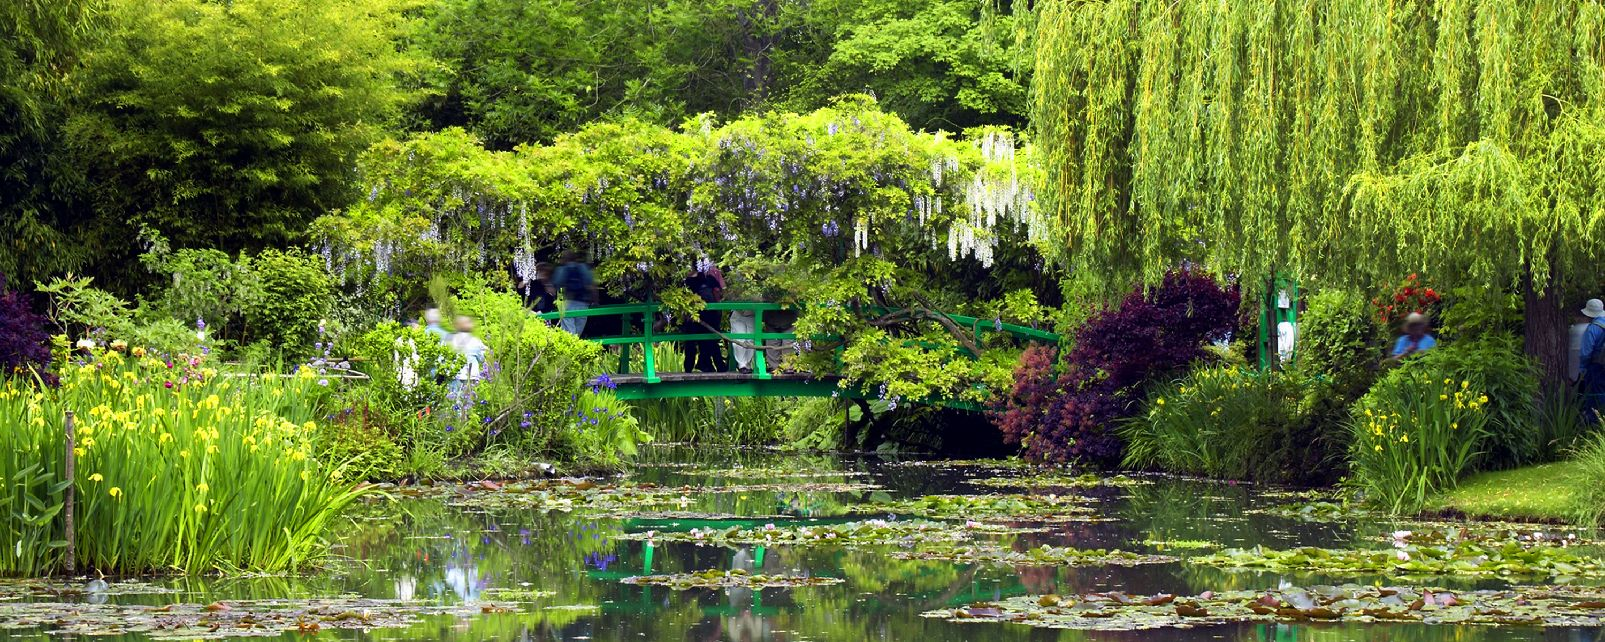 Les jardins de giverny normandie france for Jardin giverny